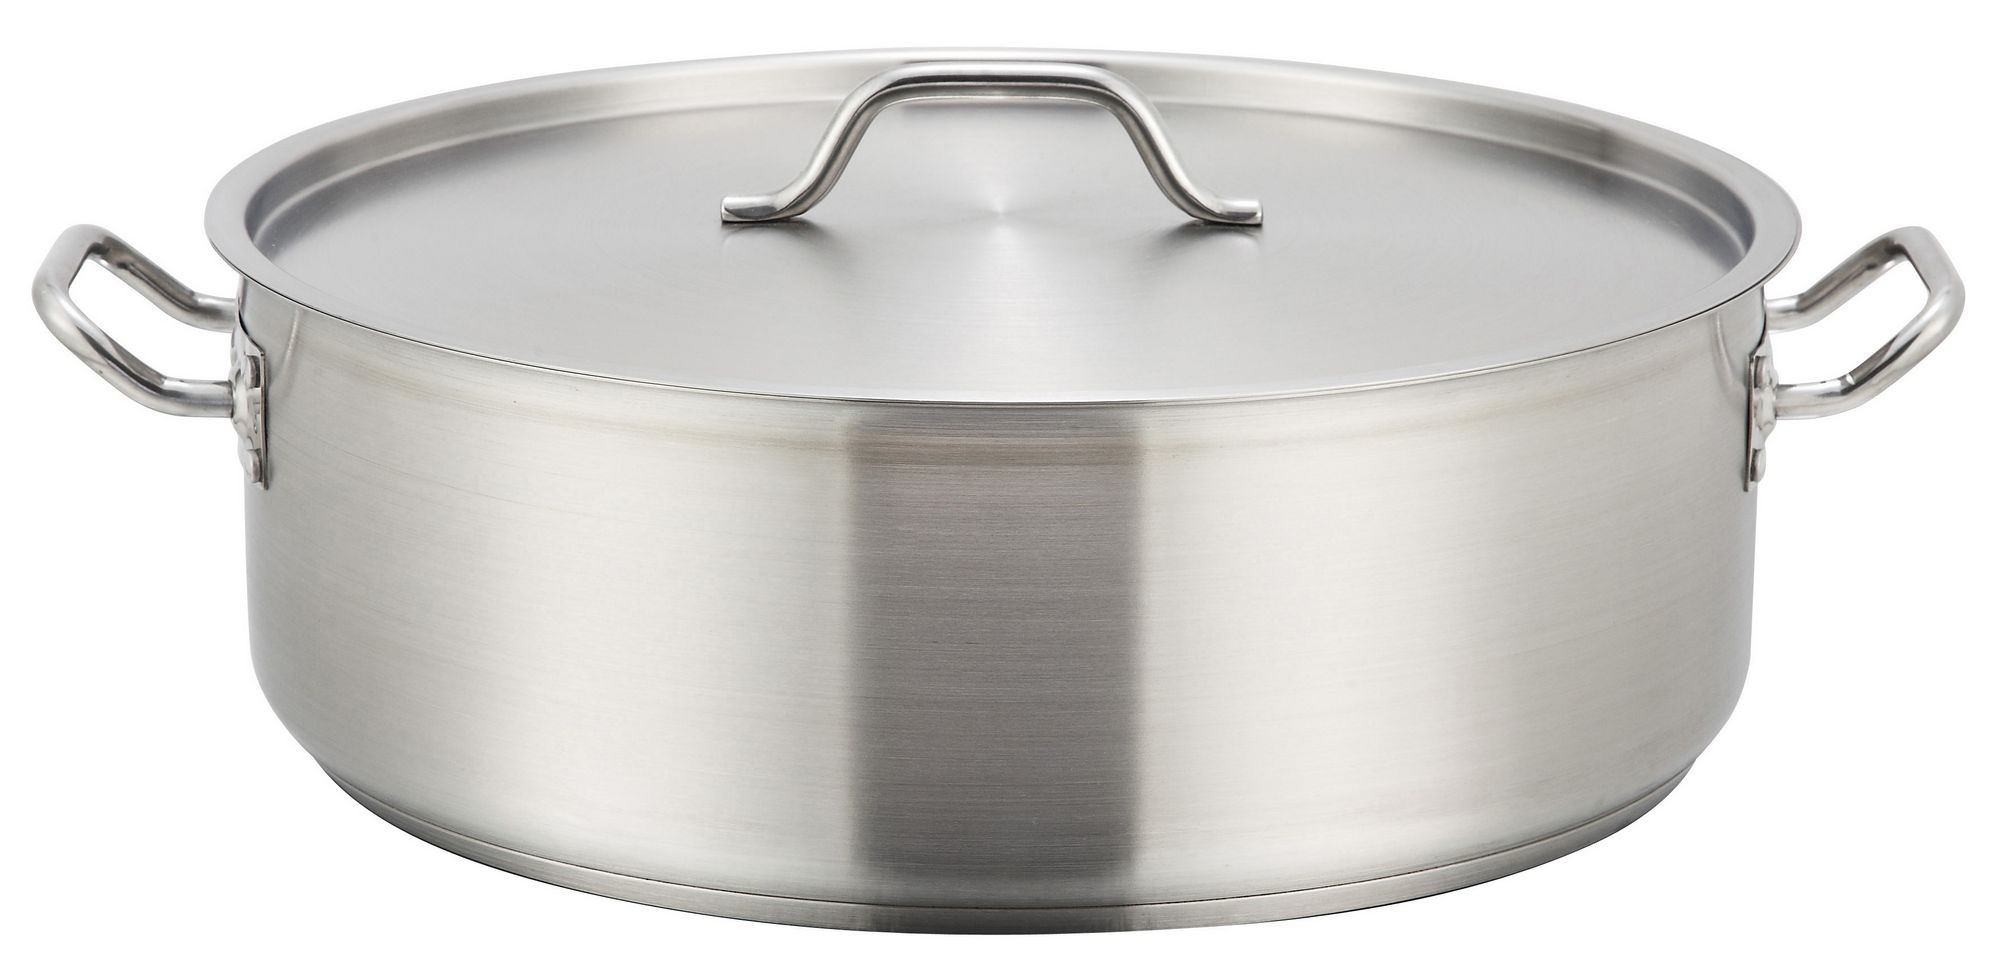 Winco SSLB-20 Stainless Steel 20 Qt. Brazier with Lid